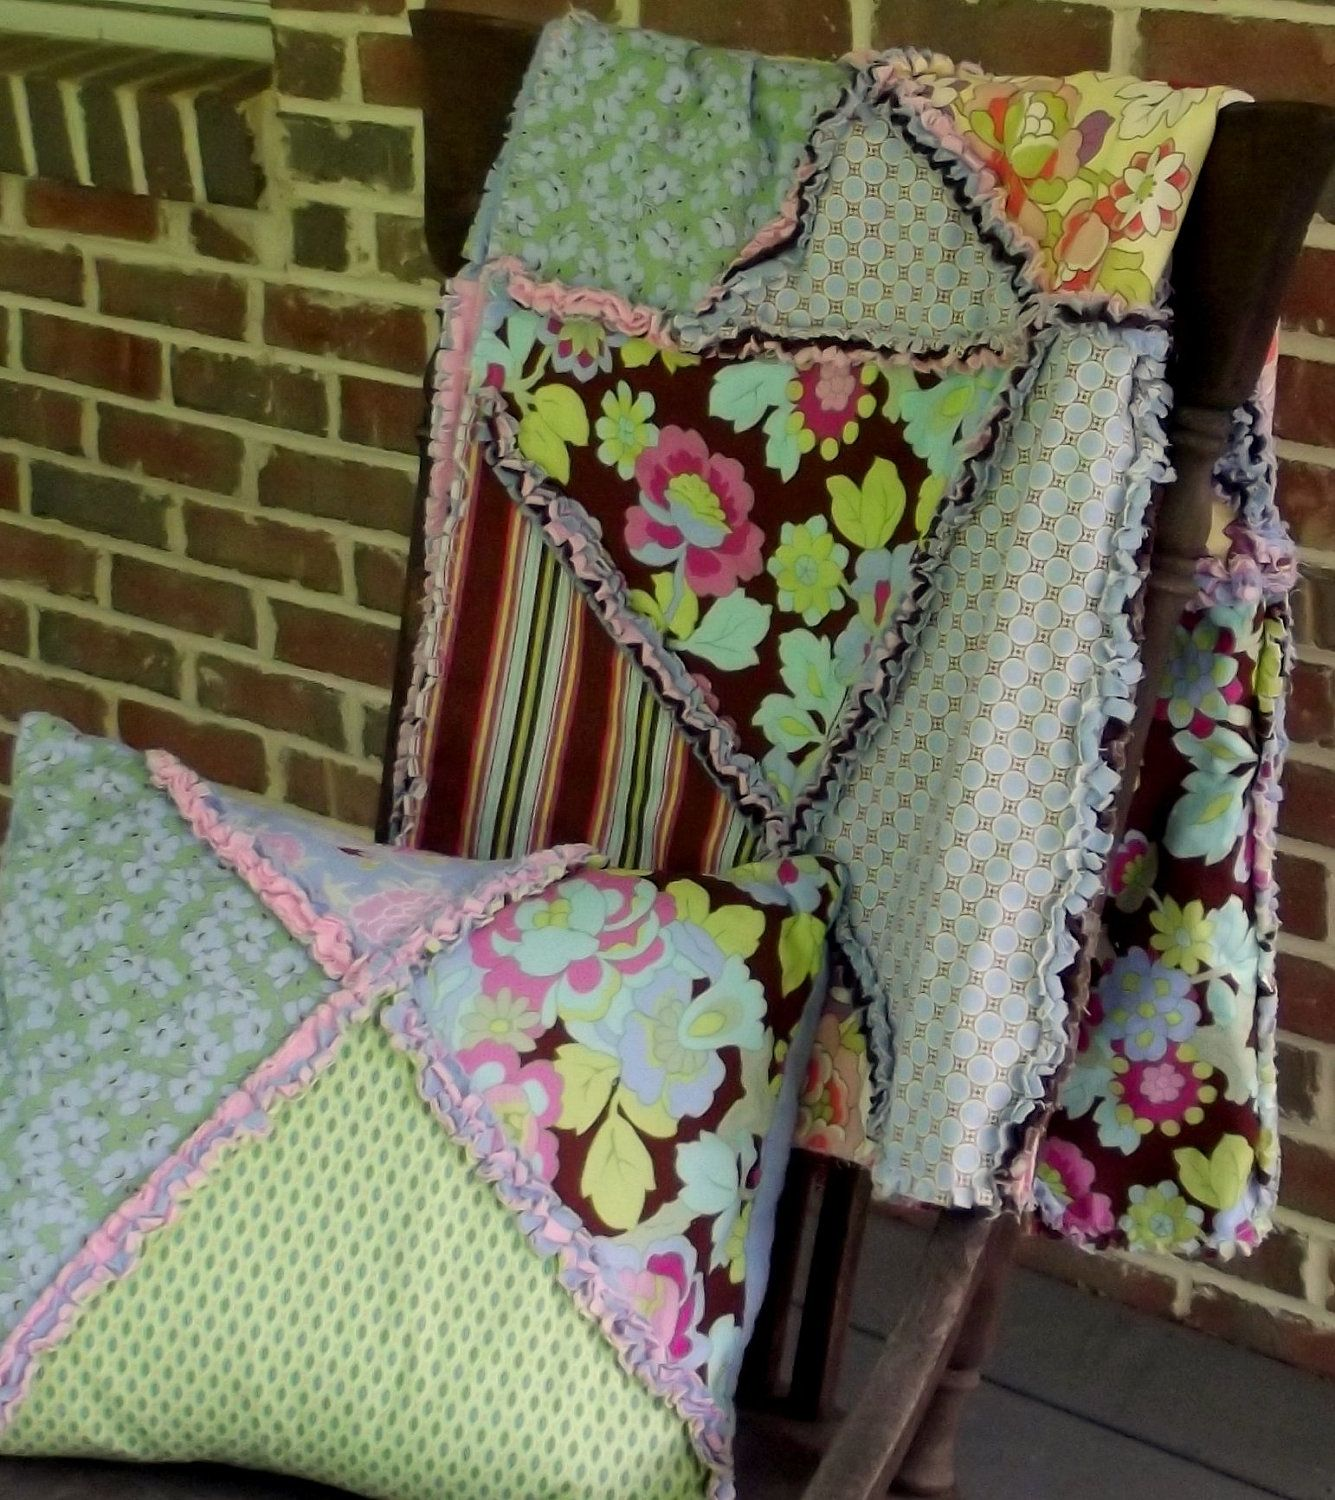 Springtime Gypsy Quilt and Pillow via Etsy.